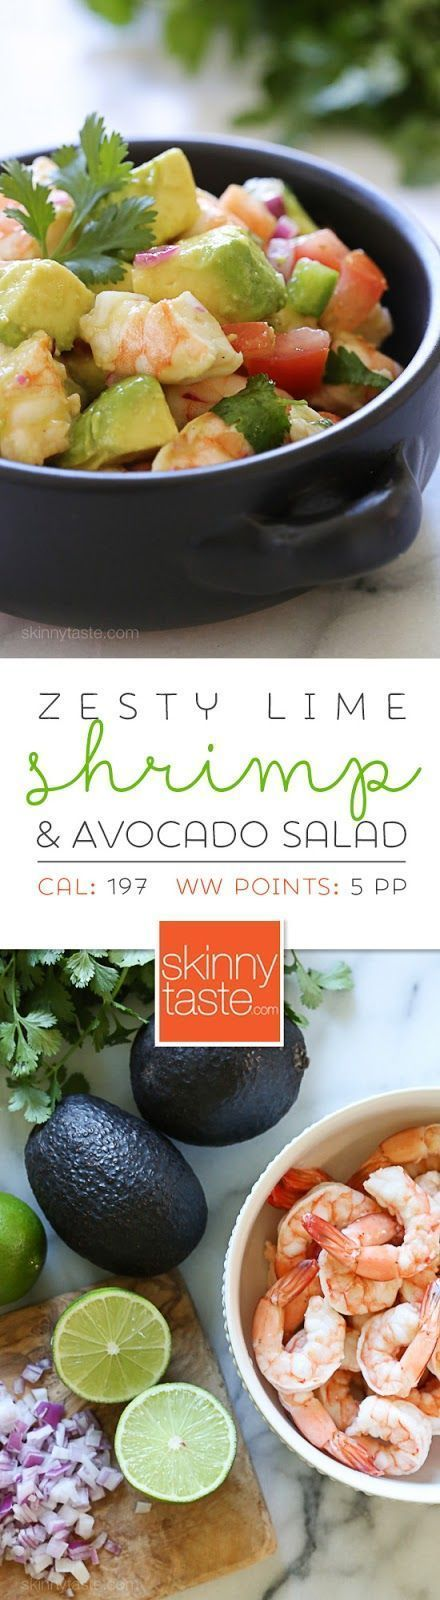 Zesty Lime Shrimp and Avocado Salad a delicious, healthy salad made with shrimp, avocado, tomato, lime juice, jalapeno and cilantro. No cooking required and super EASY! Gluten-free, low-carb, whole30, clean eating, paleo and low calories.